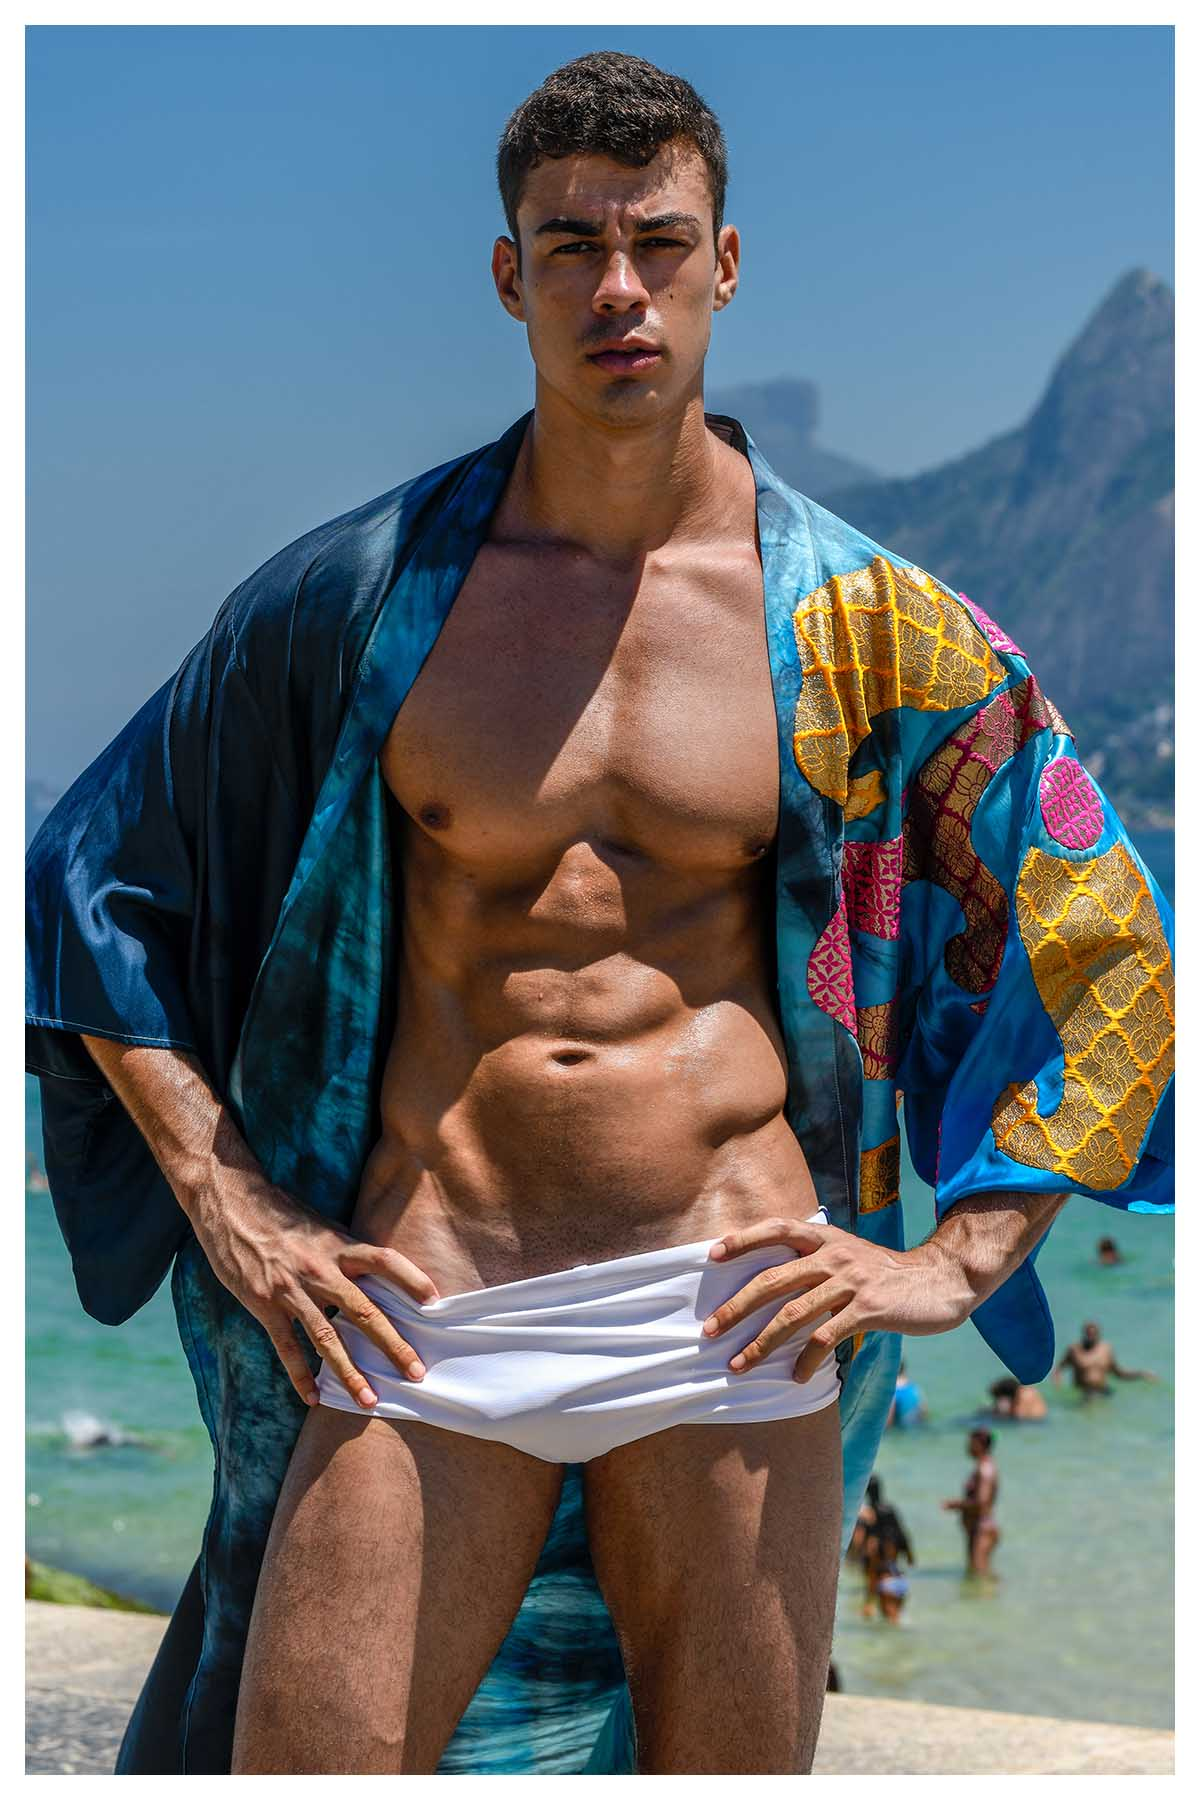 Gabriel Jayme by Wittaya Finn Sumranklang for Brazilian Male Model